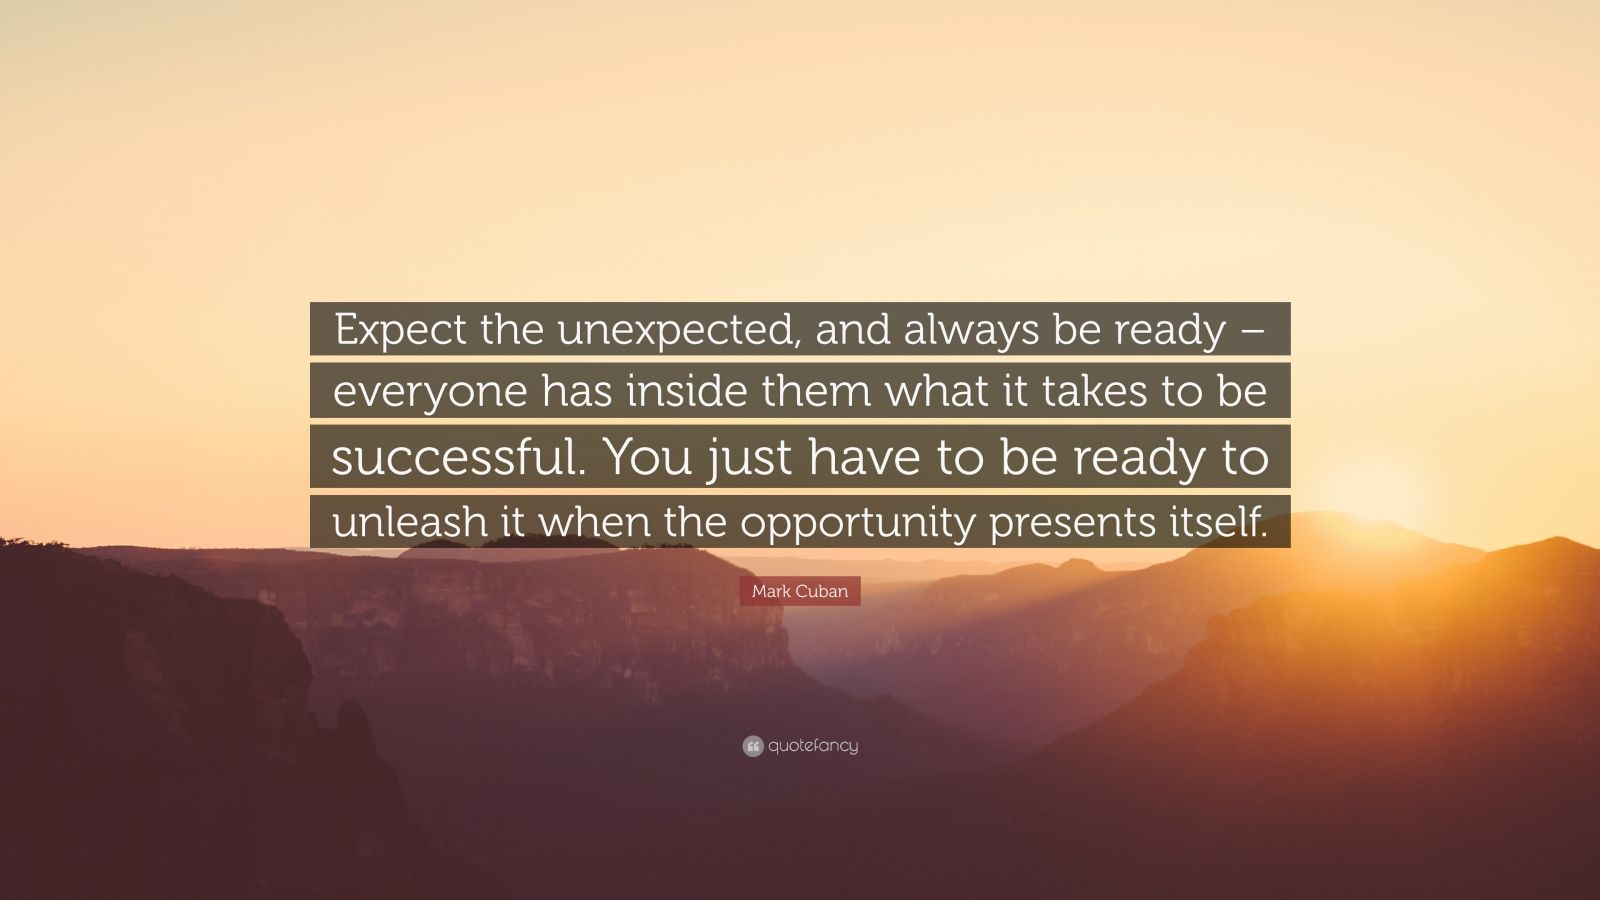 """Mark Cuban Quote: """"Expect the unexpected, and always be ready – everyone has inside them what it takes to be successful. You just have to be ready to unleash it when the opportunity presents itself."""""""